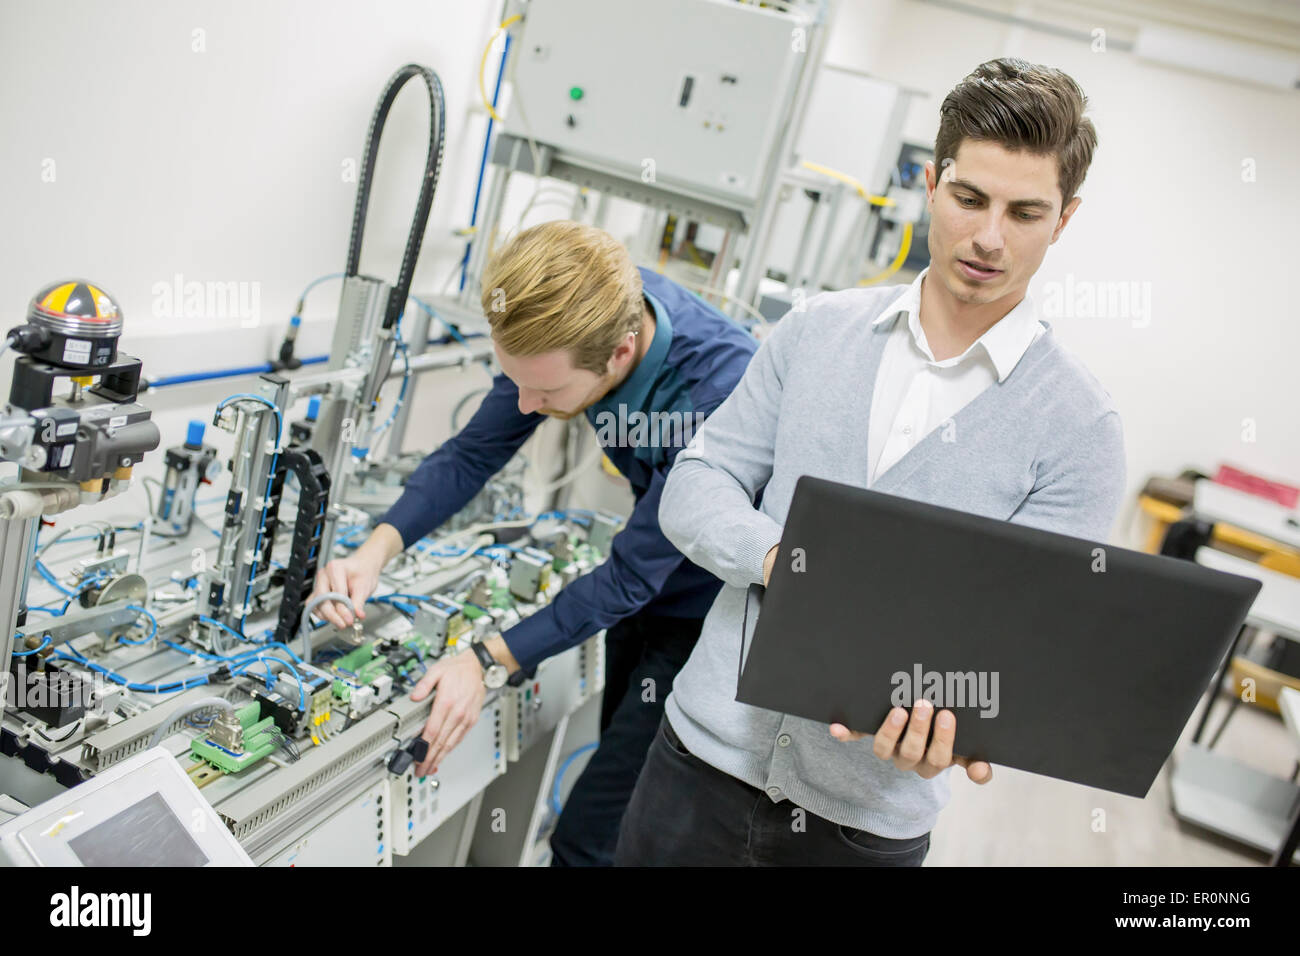 Engineers in the factory - Stock Image